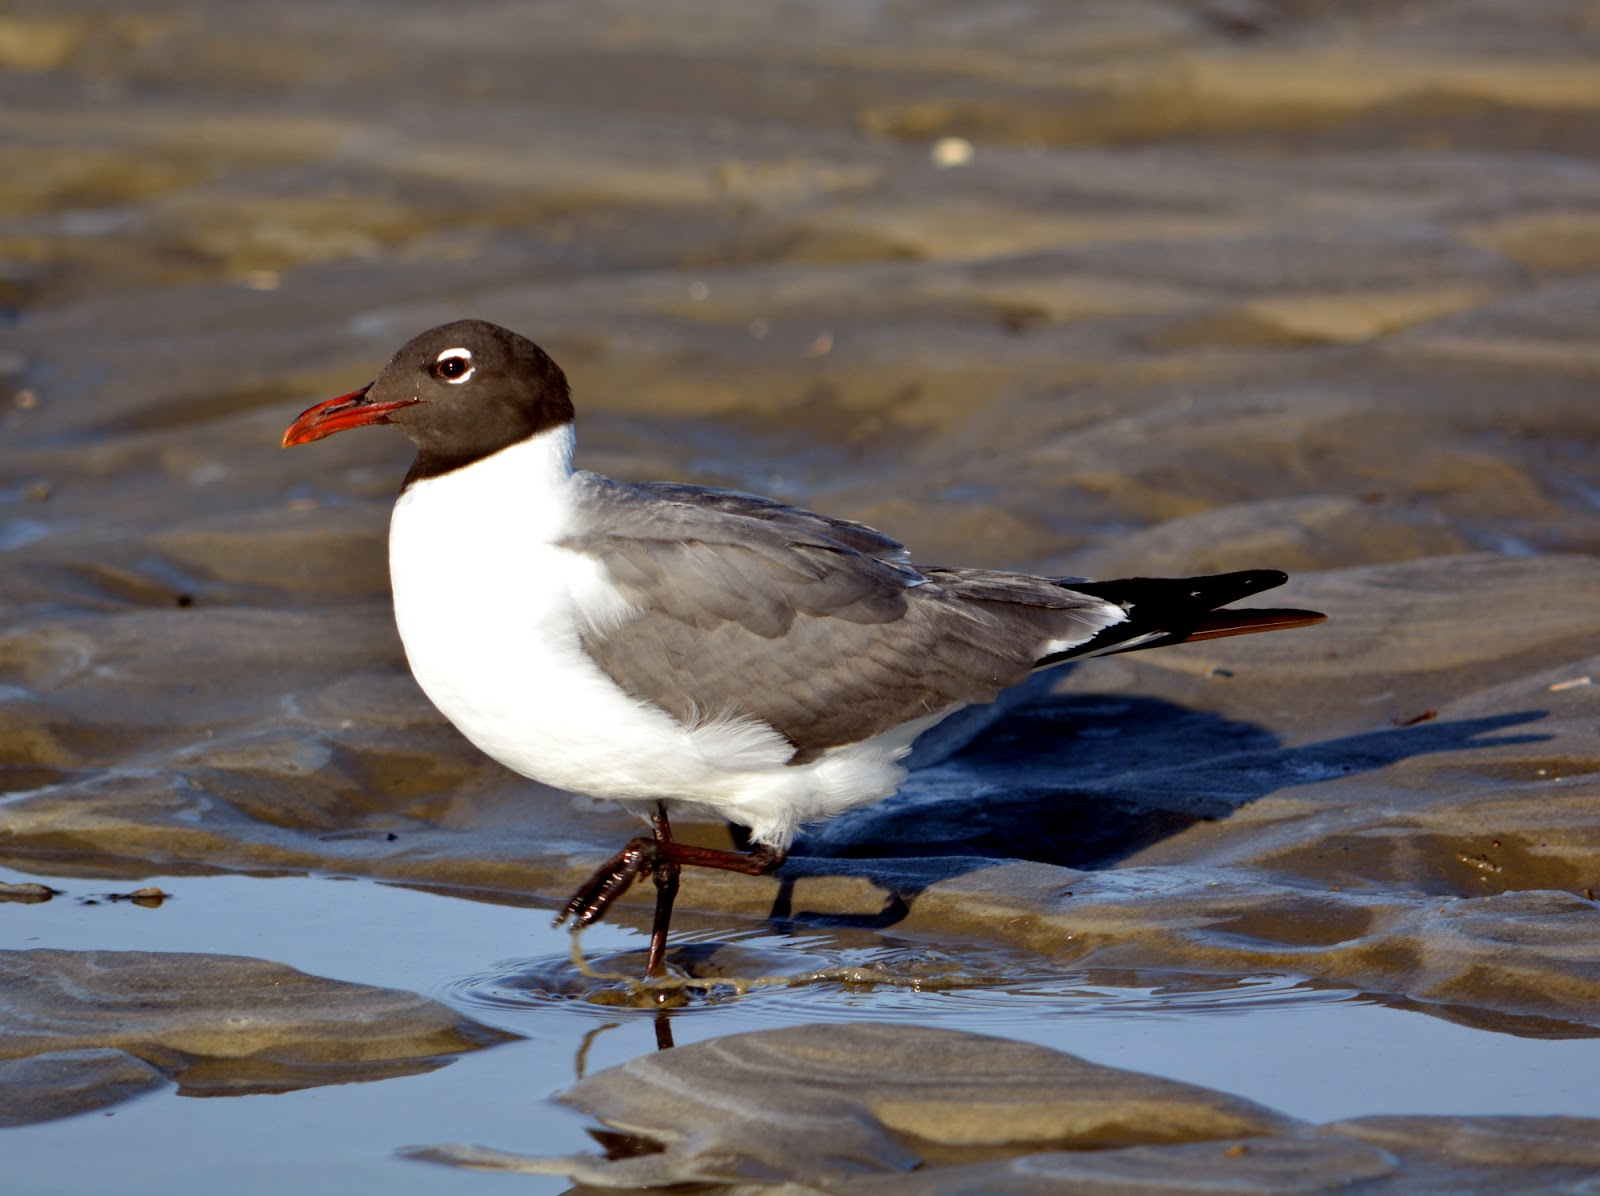 cozy birdhouse | a laughing gull. that's just the name, not any comment on its personality